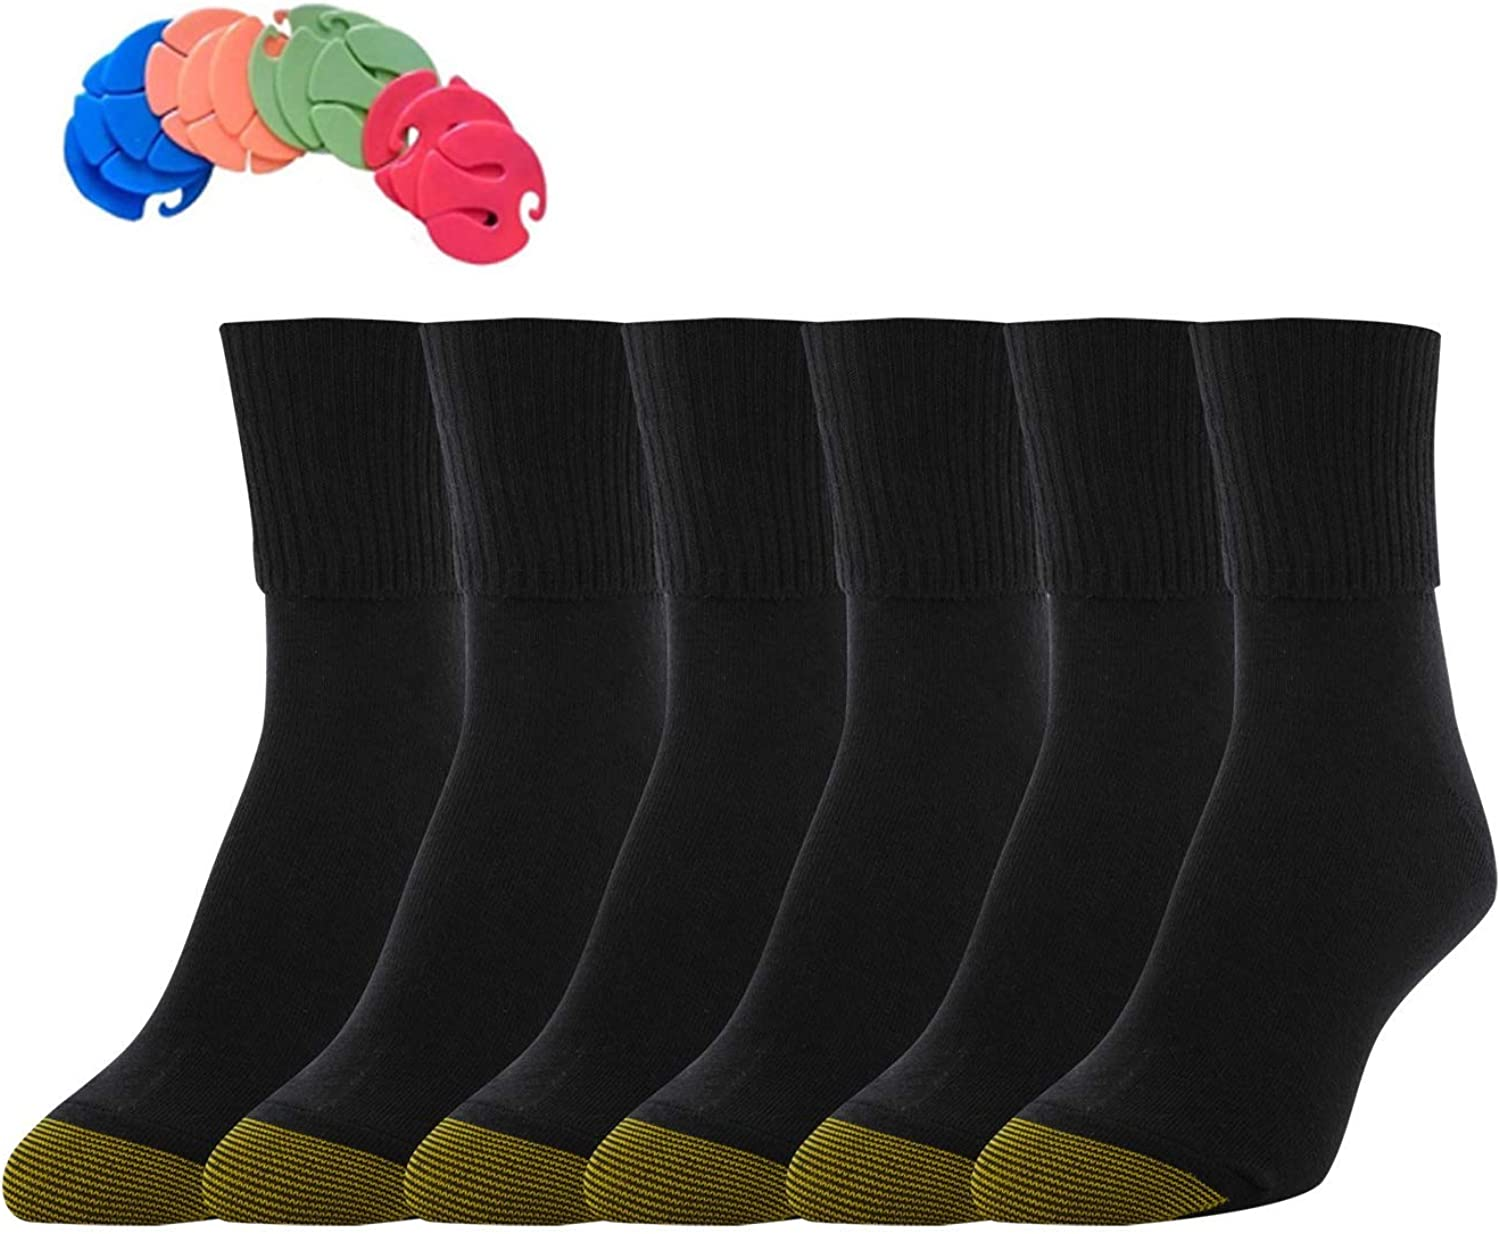 gold Toe Women's 12 Pack Turn Cuff Socks 12 Free Sock Clips Included ( 10 Value)